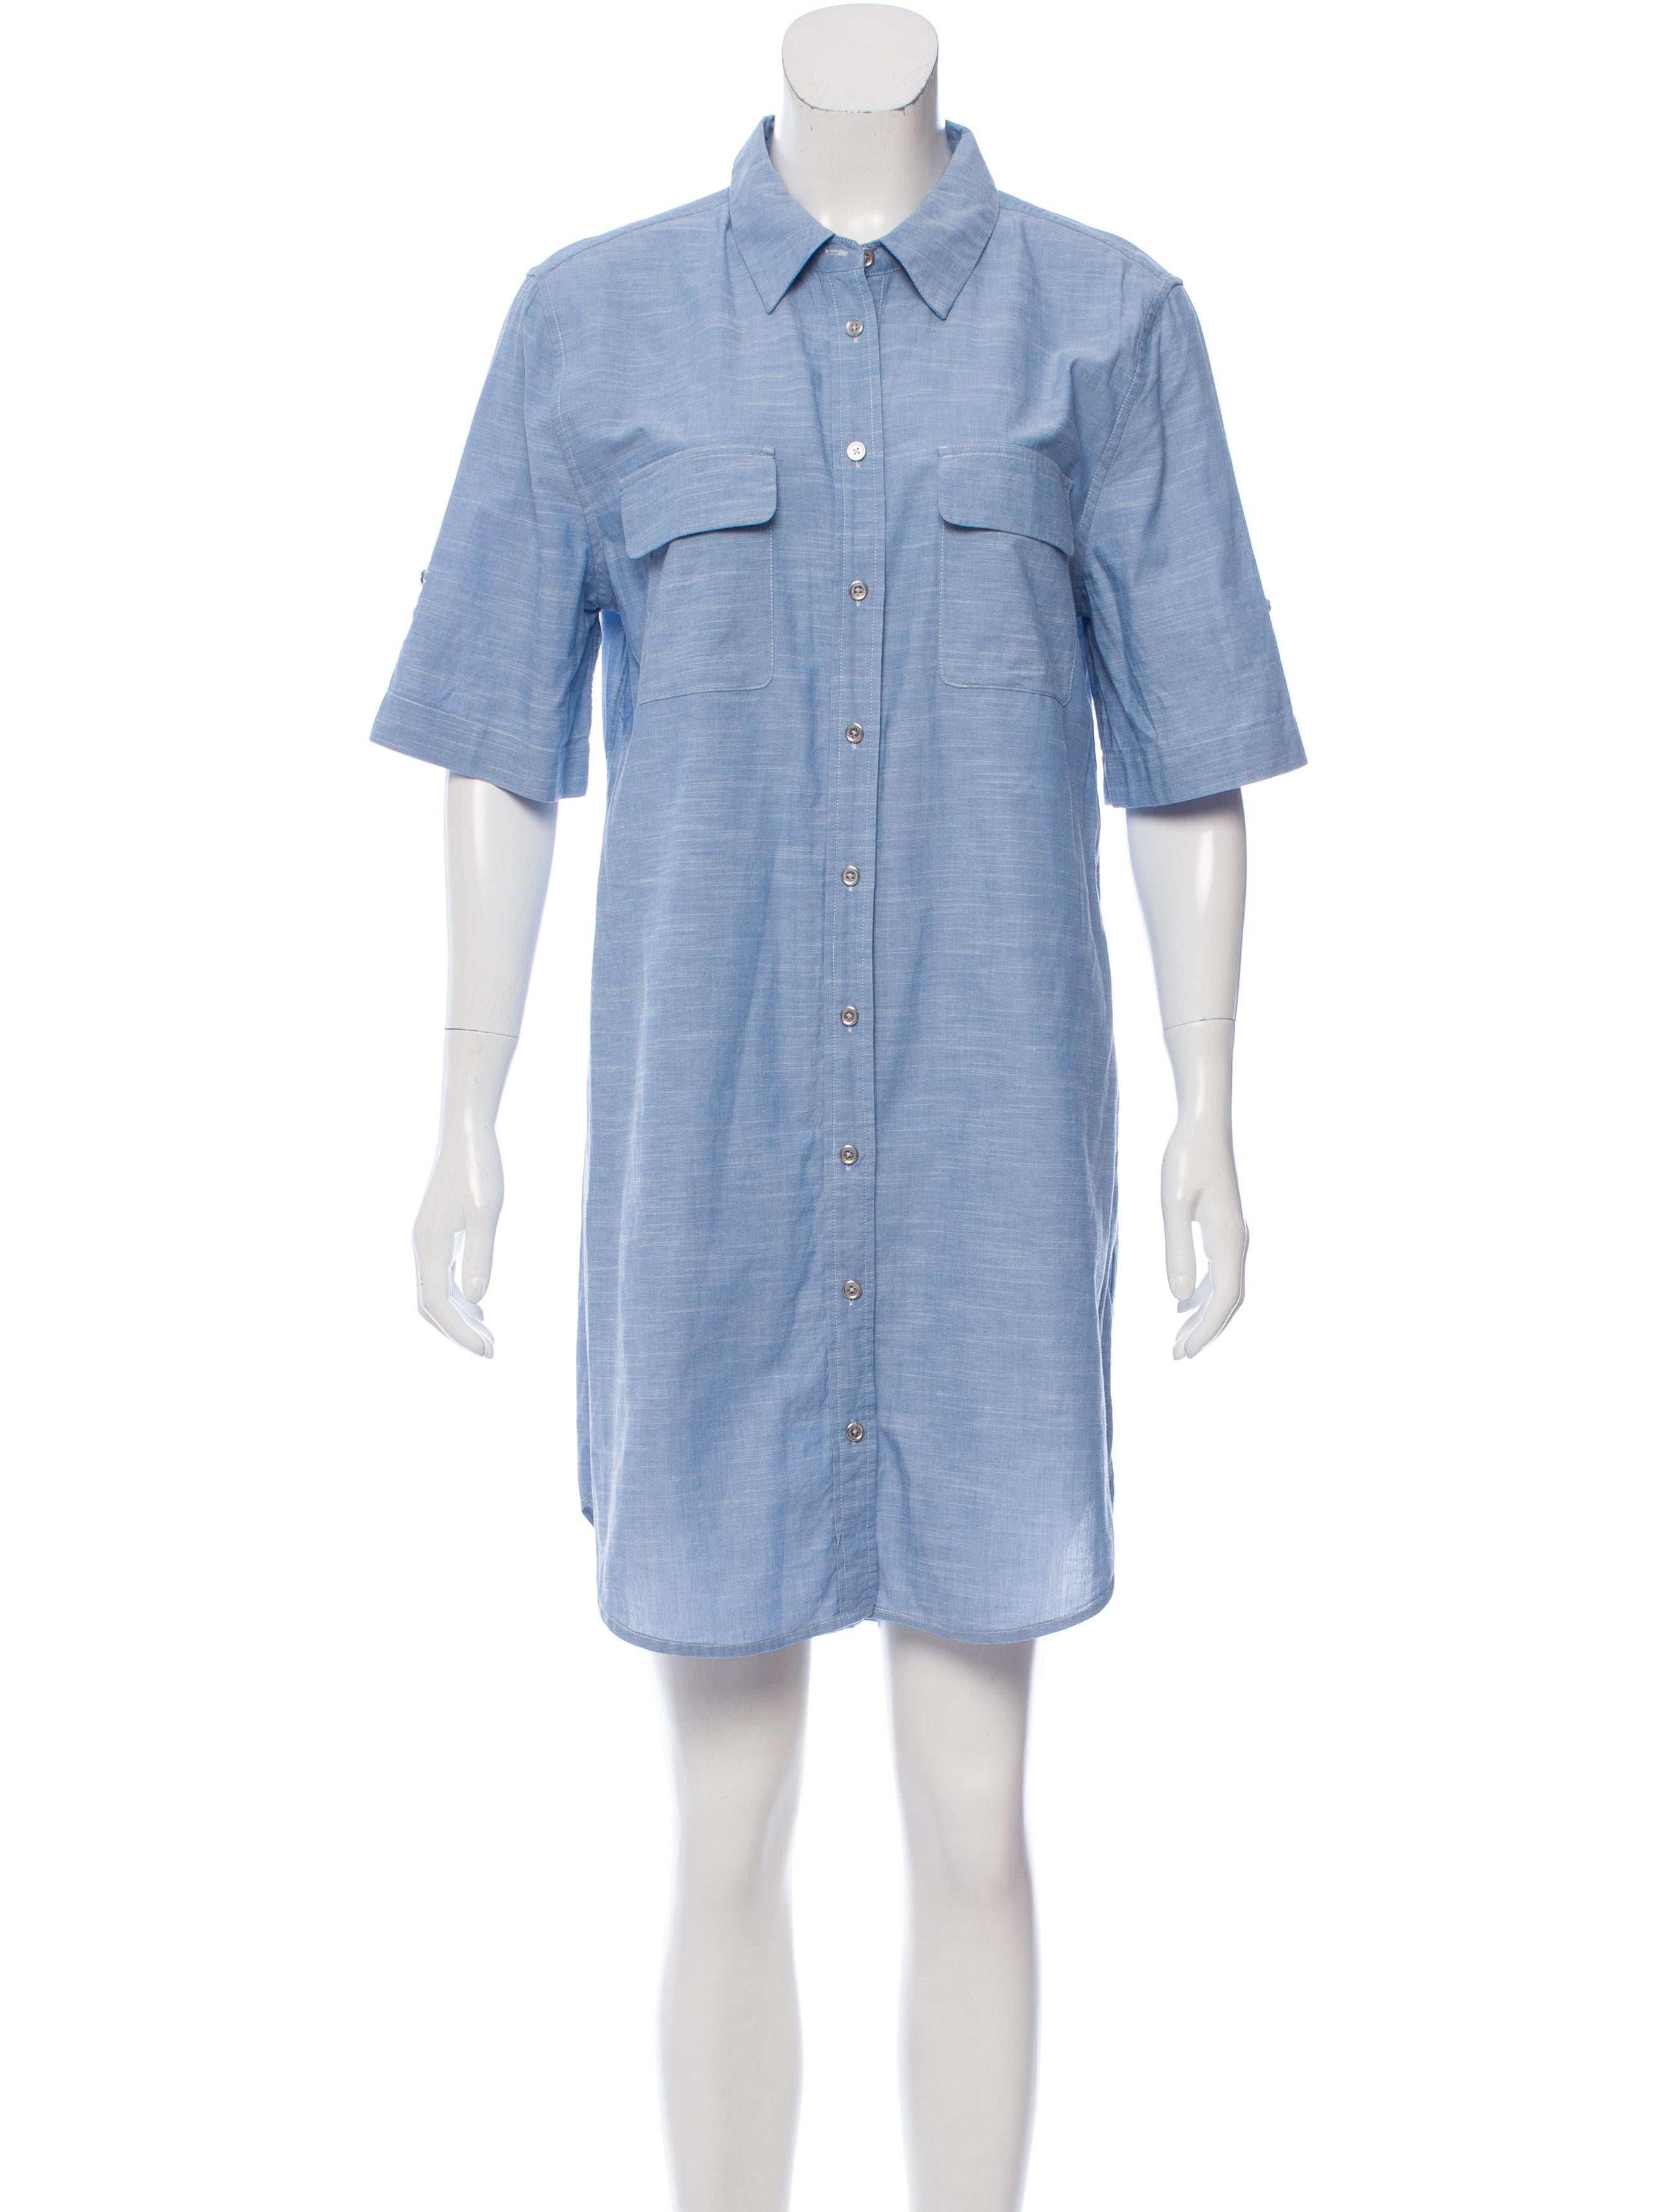 Equipment Casual Button Up Dress Clothing Weq38143